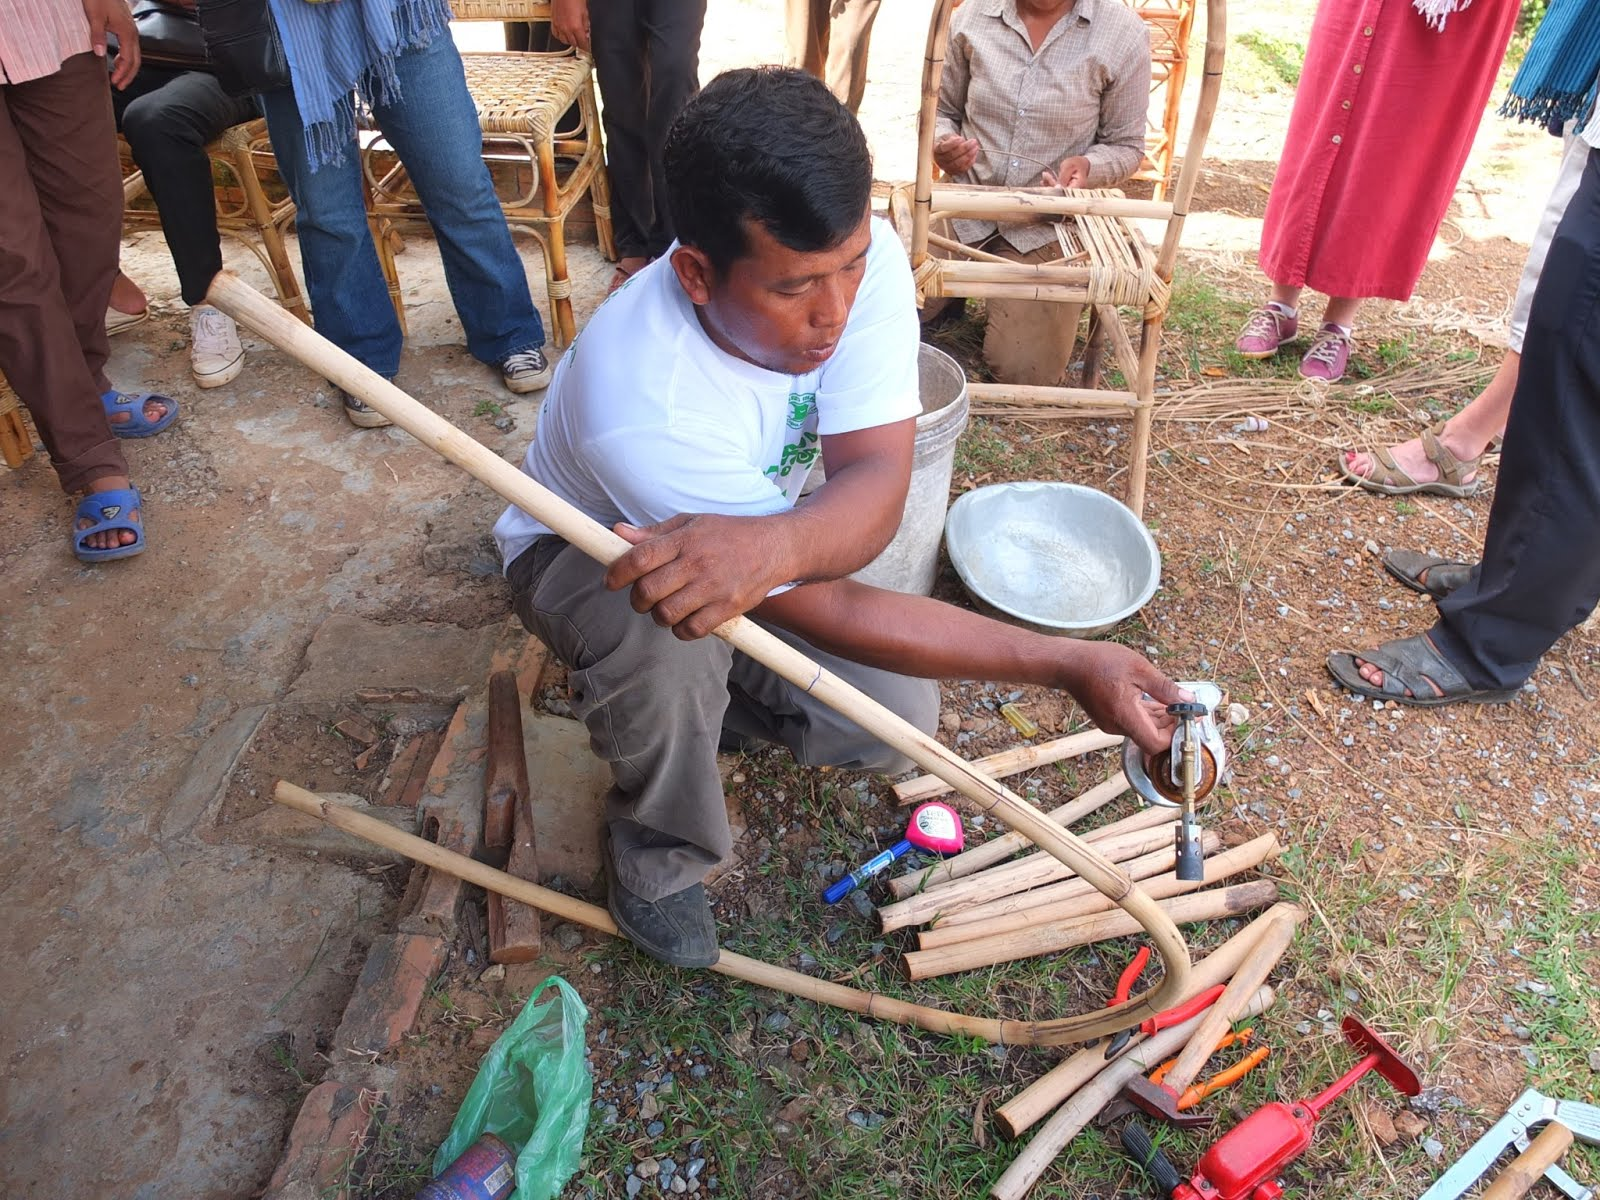 Gentil How To Make Rattan Furniture